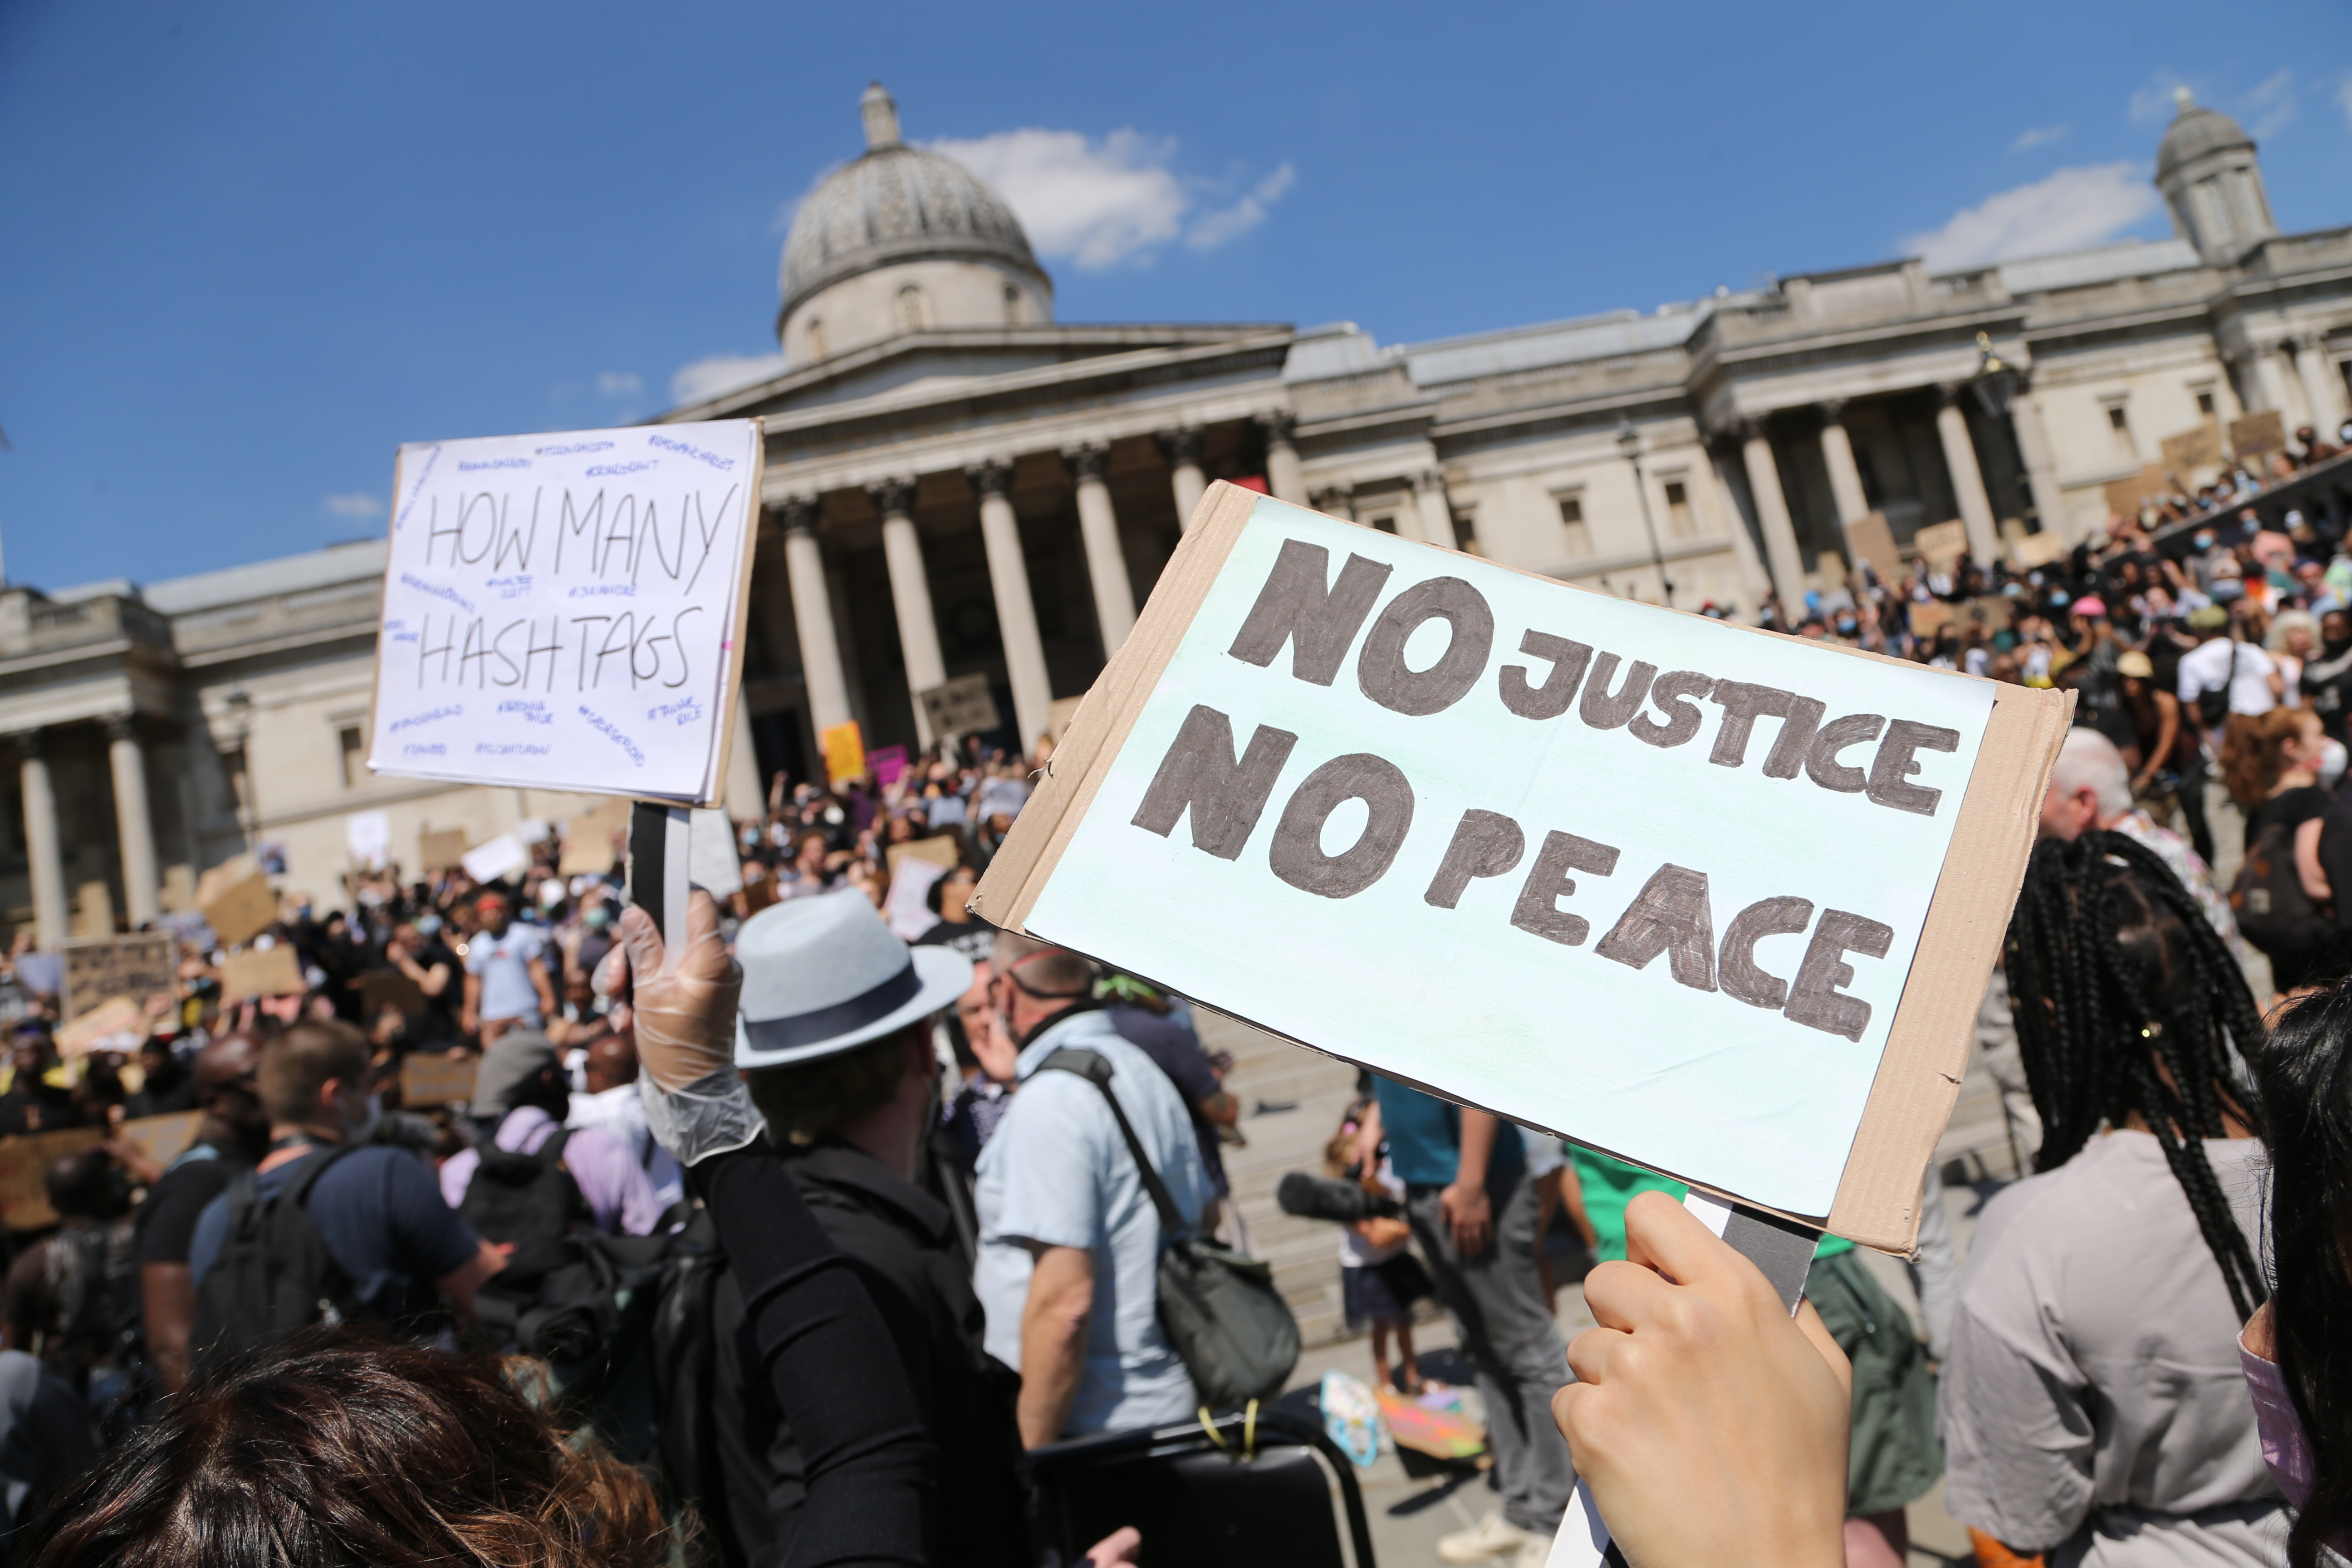 LONDON, UNITED KINGDOM - MAY 31: People gather during a protest over the death of George Floyd, an unarmed black man who died after being pinned down by a white police officer in USA, at Trafalgar Square on May 31, 2020 in London, United Kingdom. (Photo by Ilyas Tayfun Salci/Anadolu Agency via Getty Images)